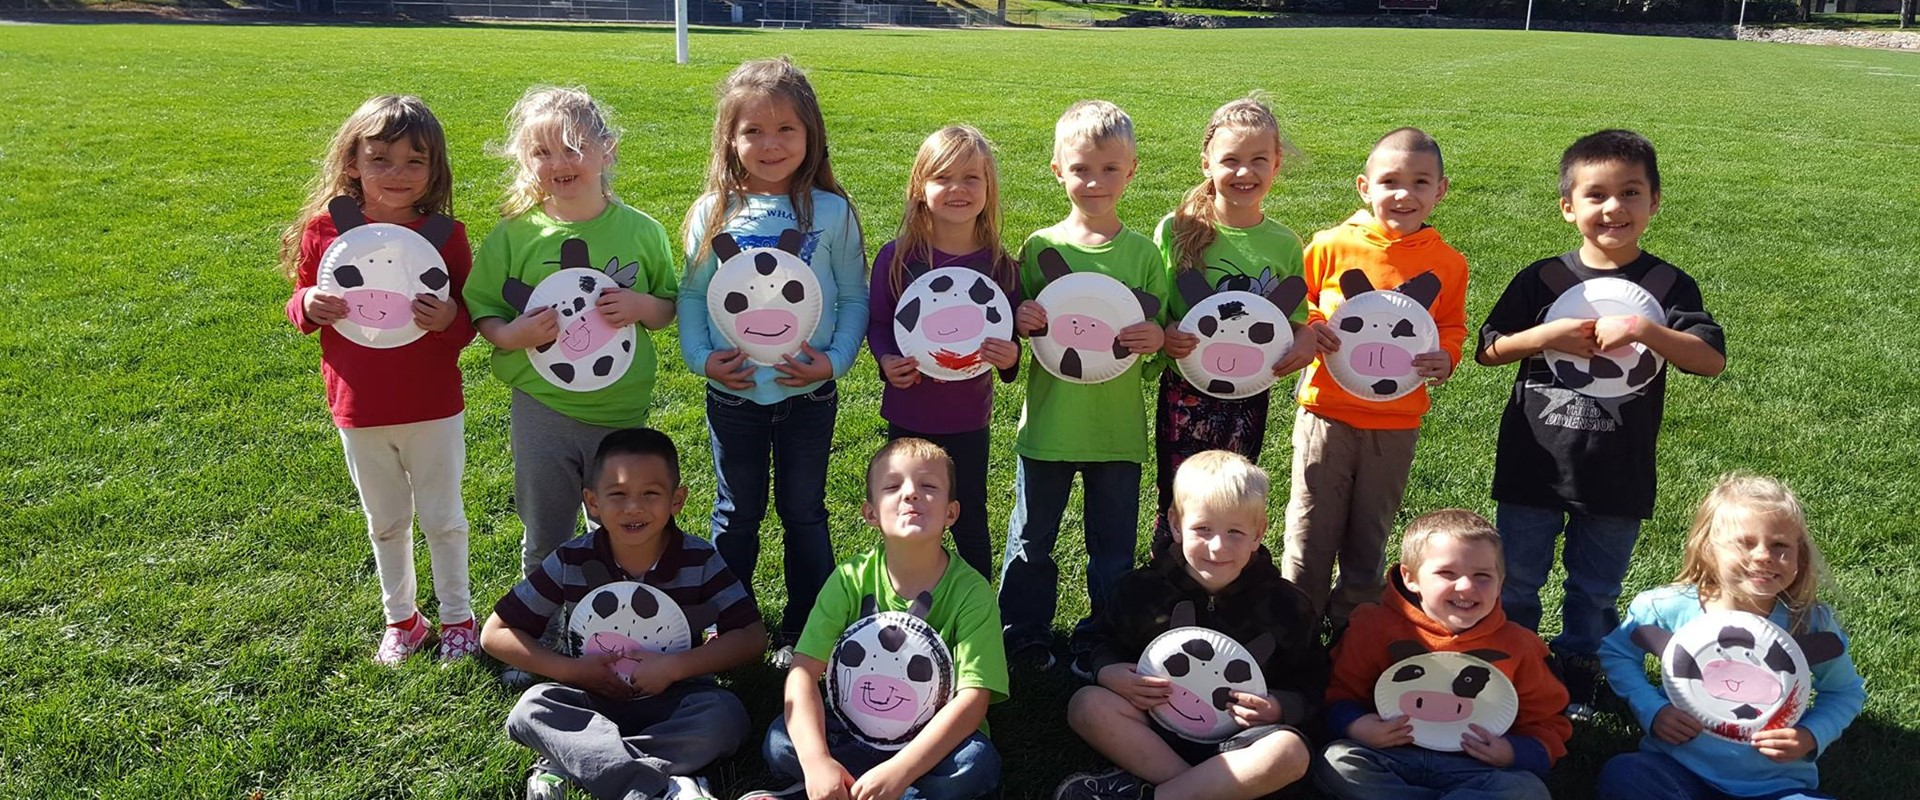 The BRE kindergarten class had a blast at the FFA petting zoo! Check out those cool creations! #MOO